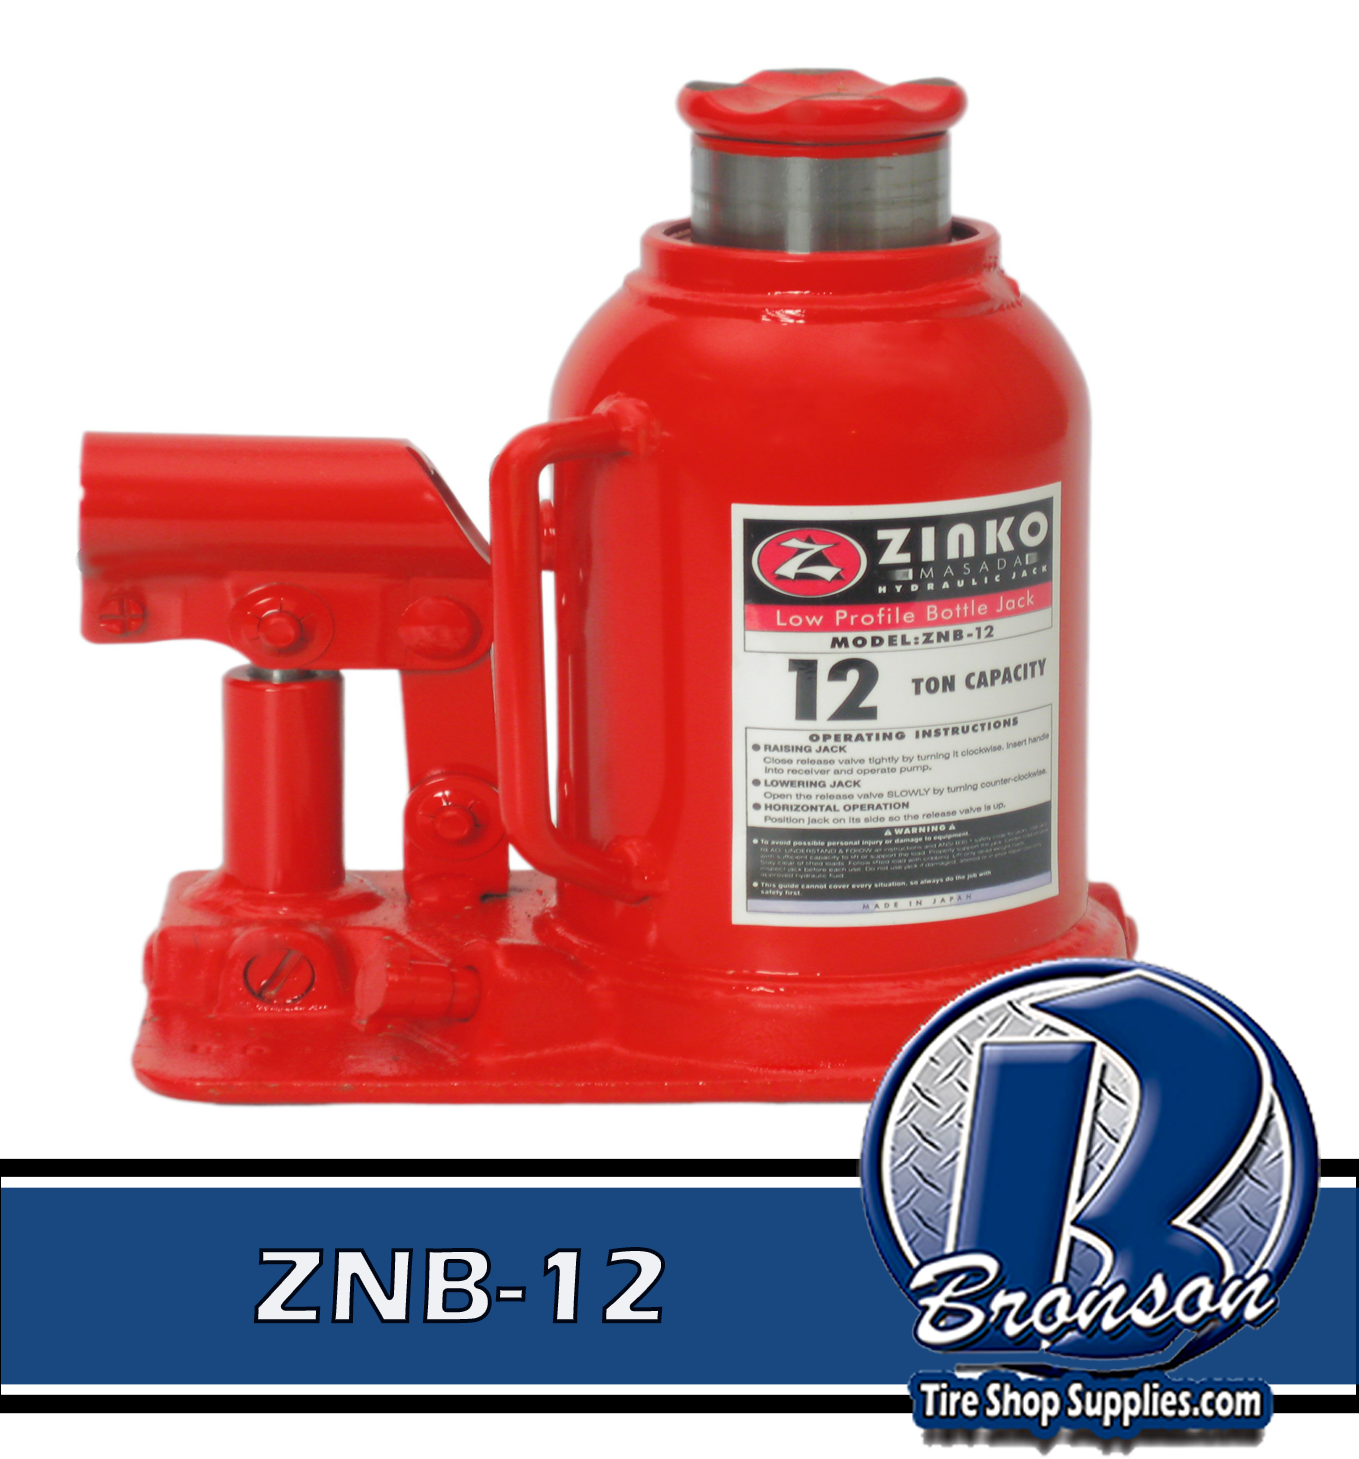 ZINKO ZNB-12 12 Ton Low Height Hydraulic Bottle Jack